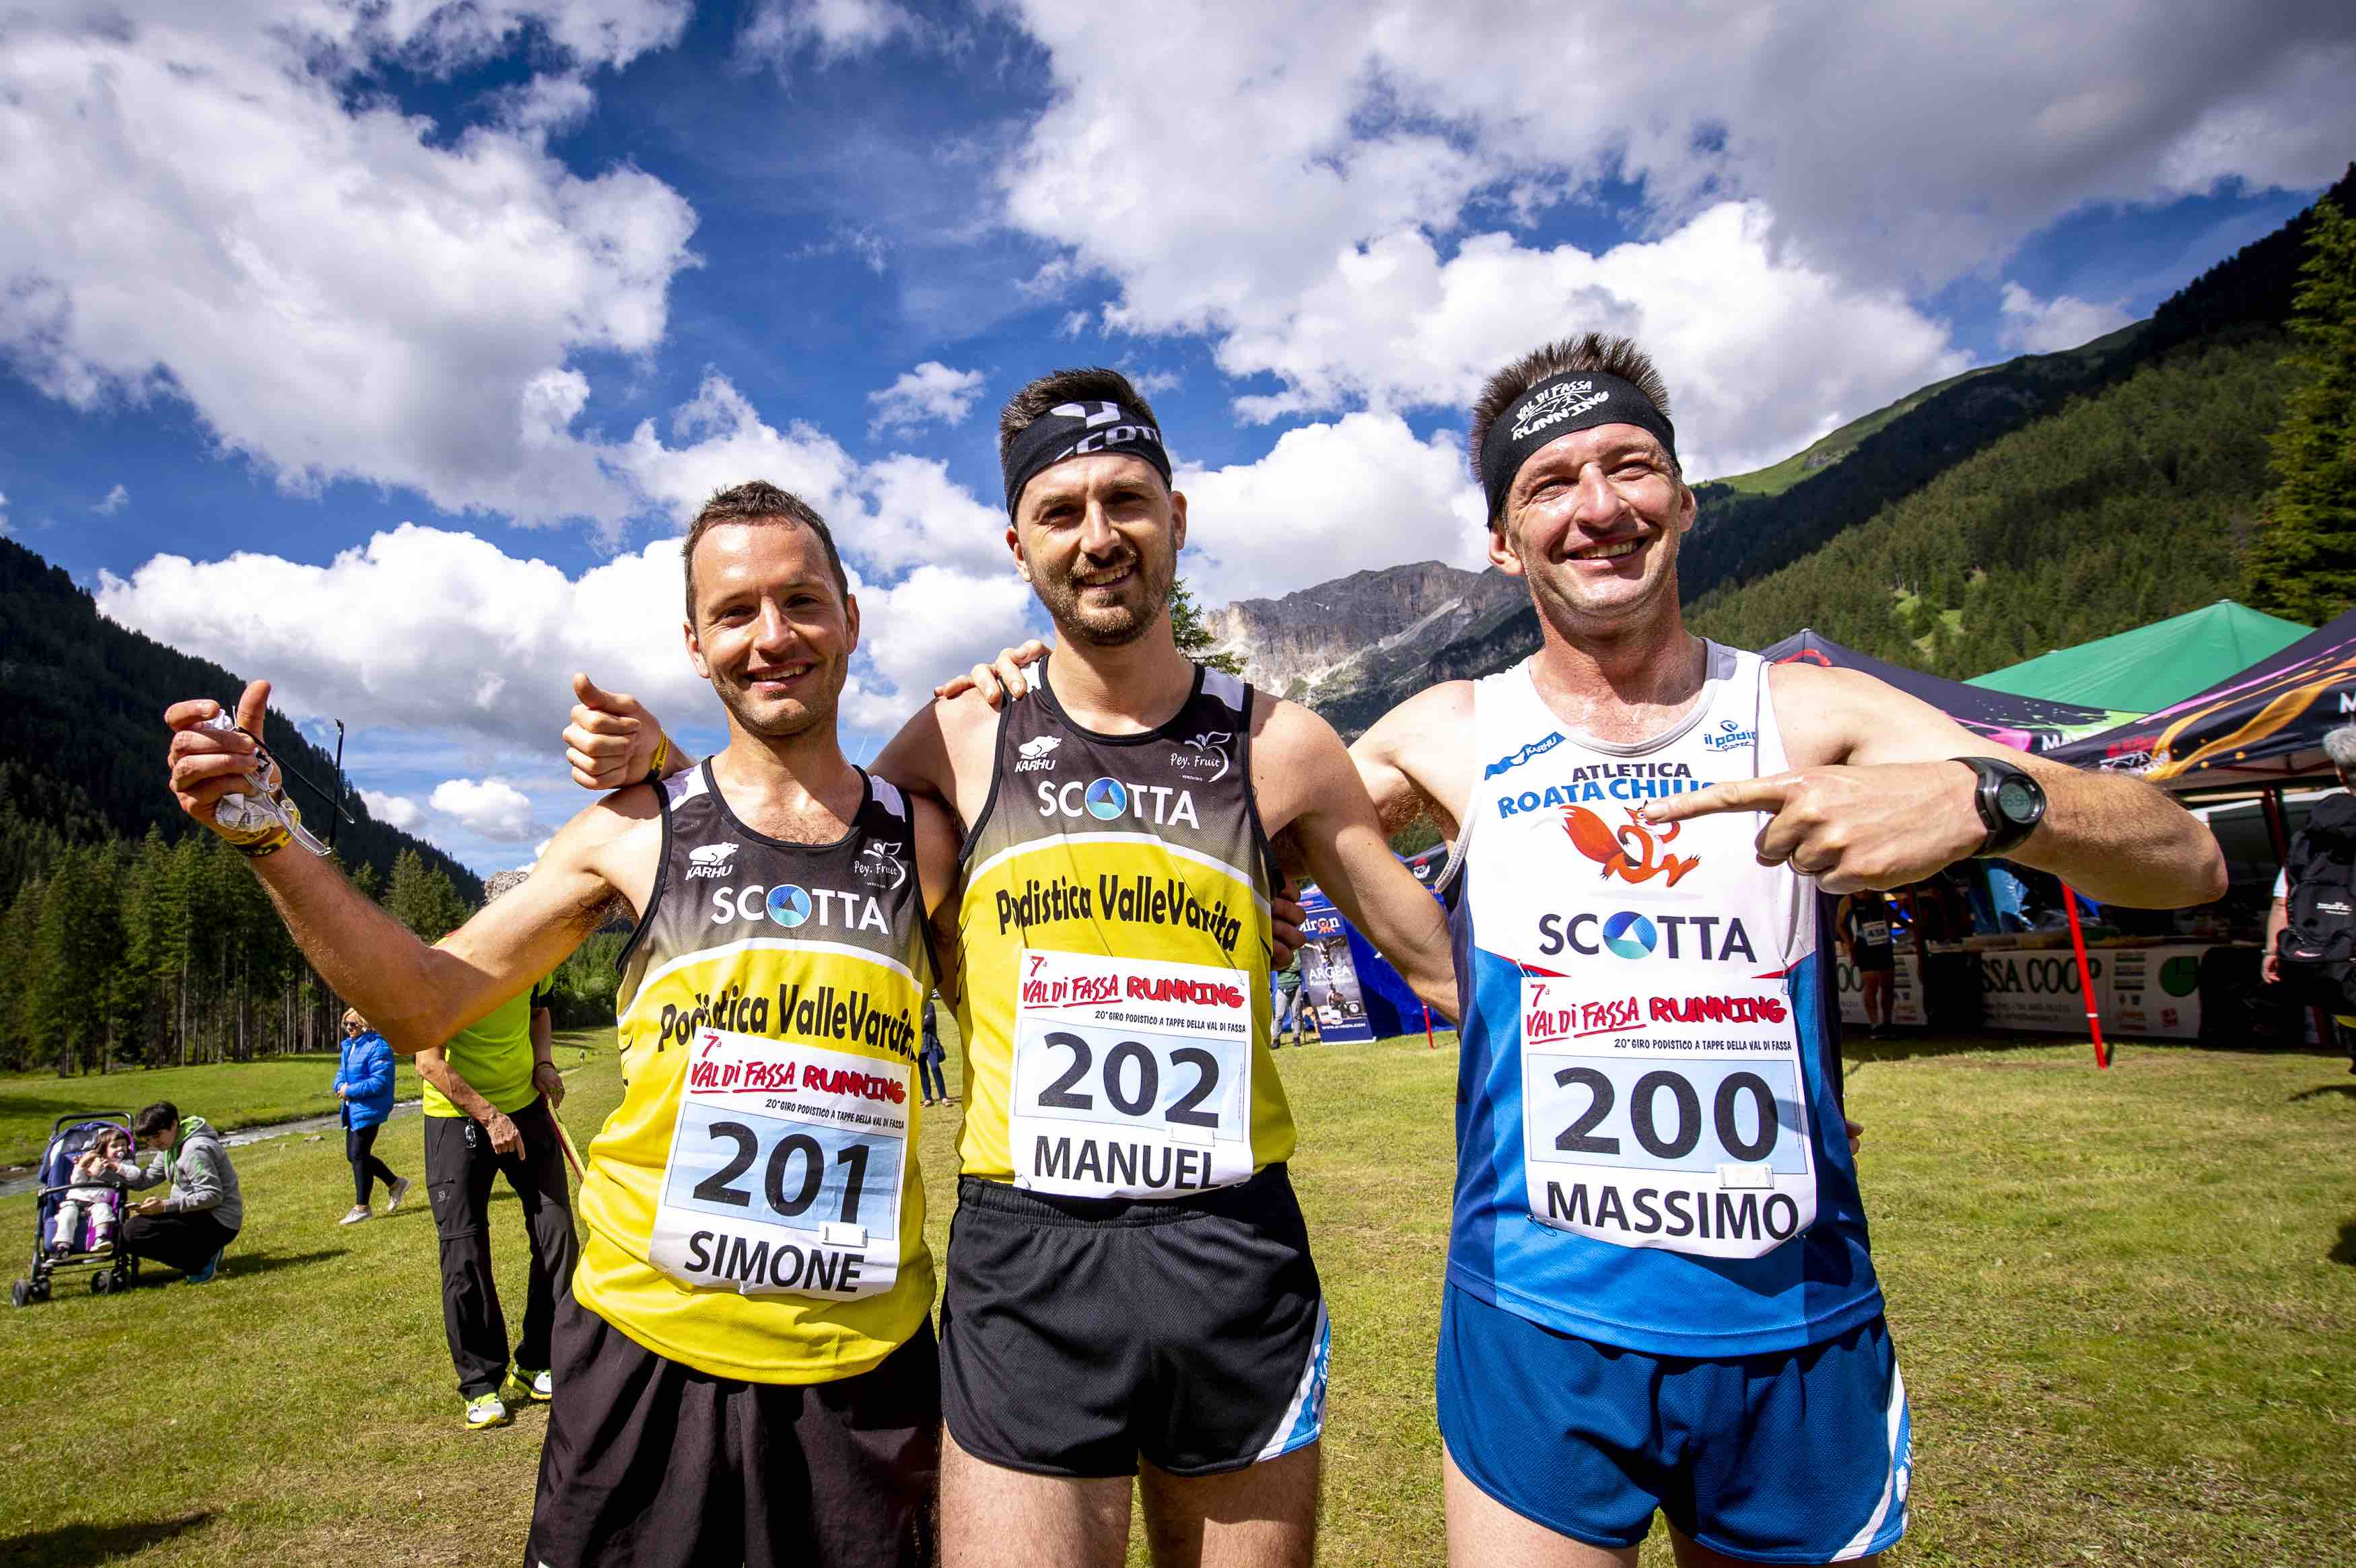 Day 1 - Podio Maschile Val di Fassa Running 2018